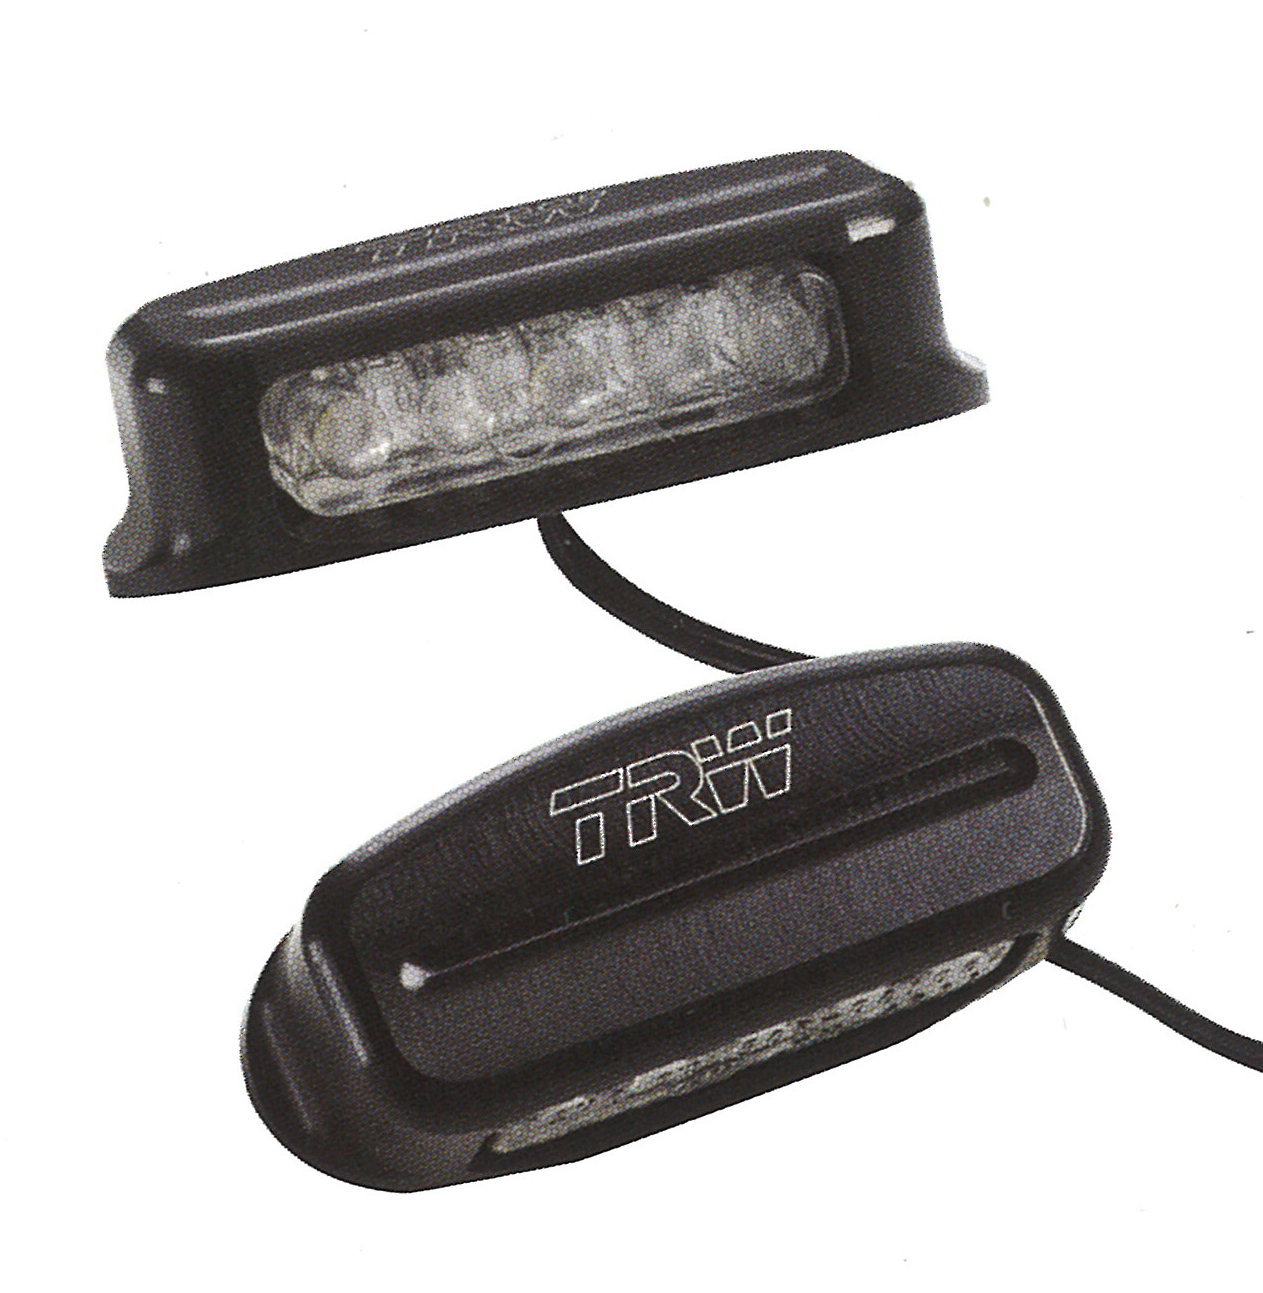 Eclairage Led Moto Trw Eclairage De Plaque Led Msh902 Rad Eu